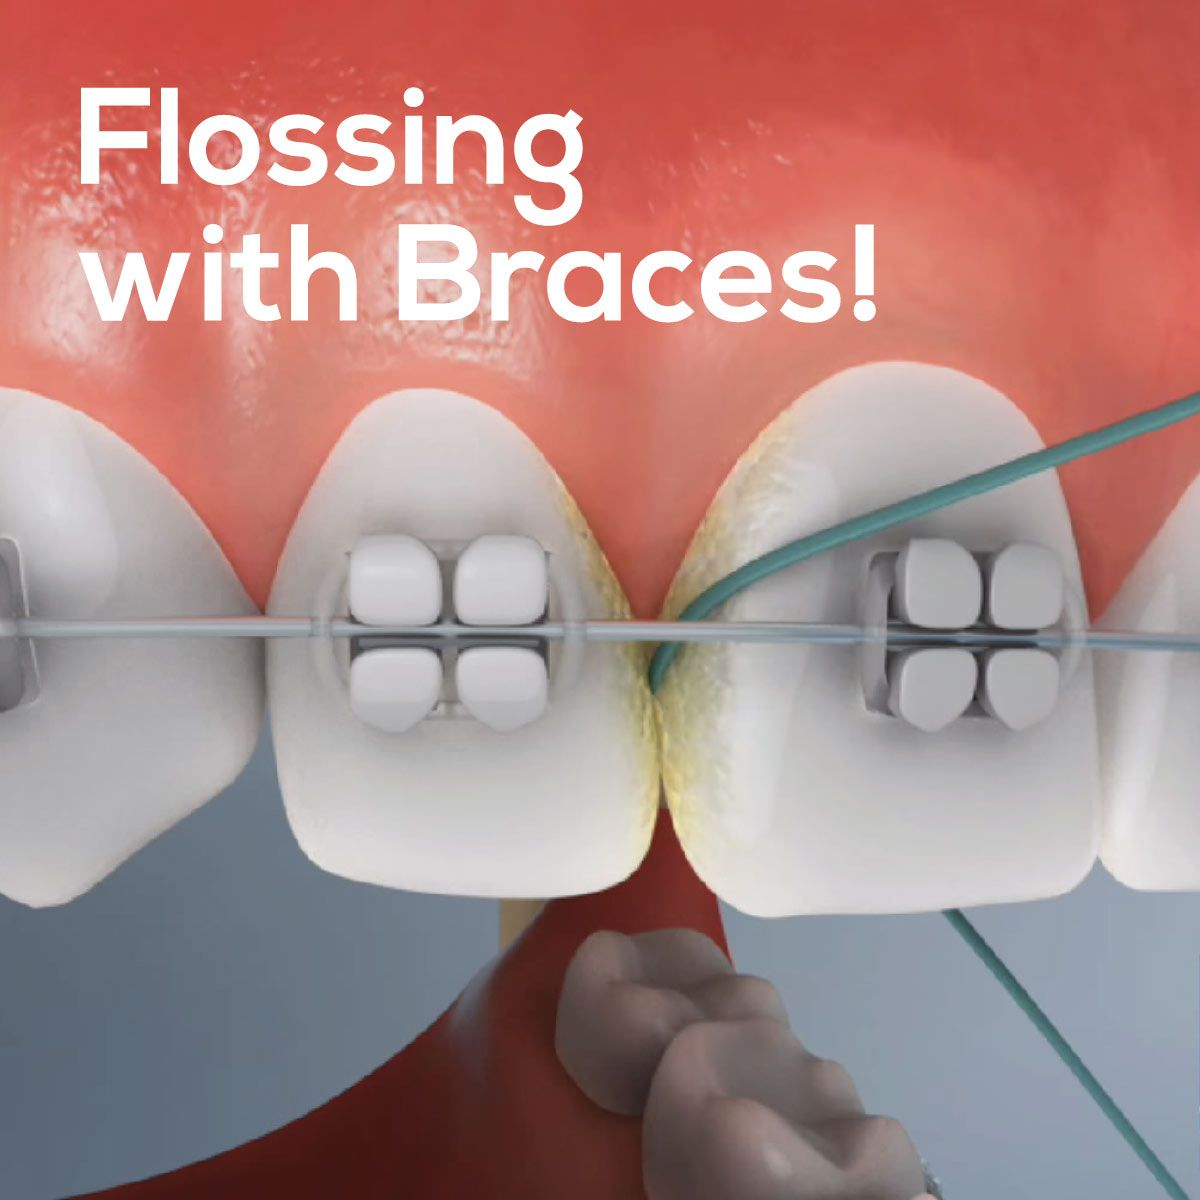 FLOSSING WITH BRACES can be challenging and is a little